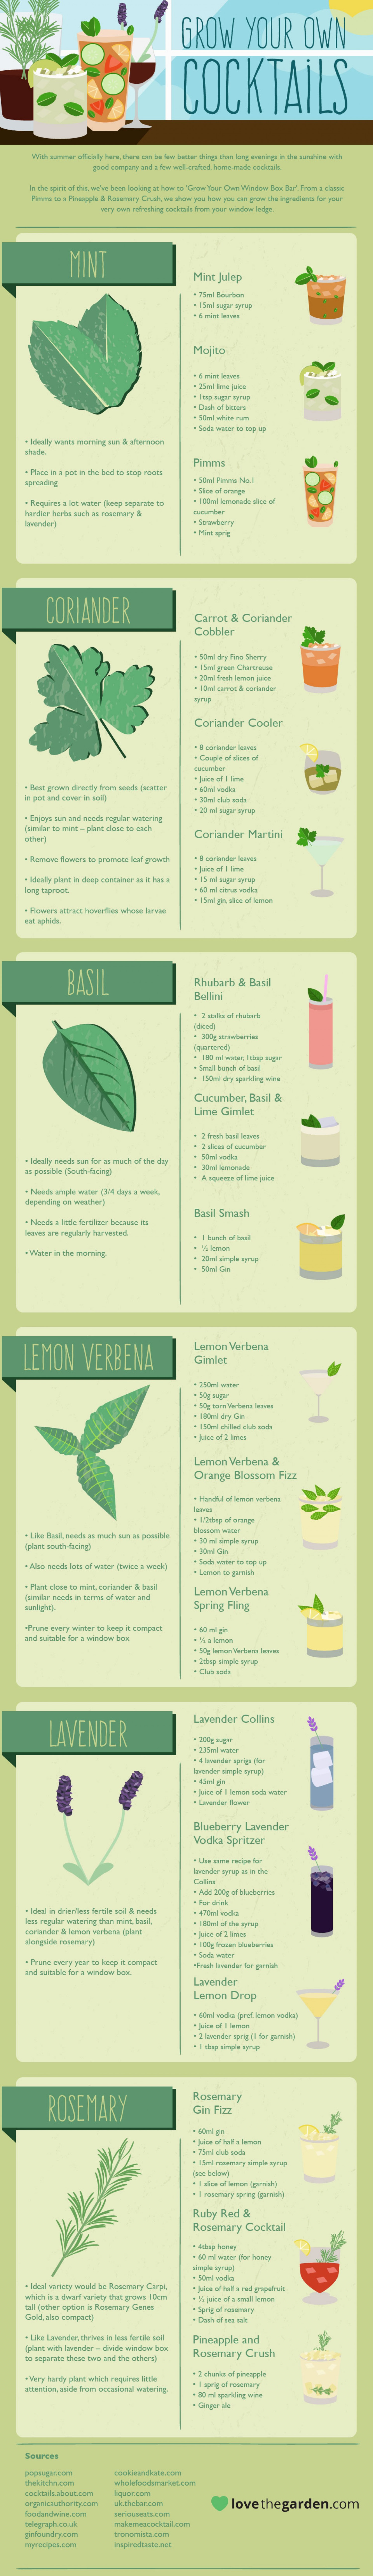 6 Herbs Can Make 18 Fresh Cocktails